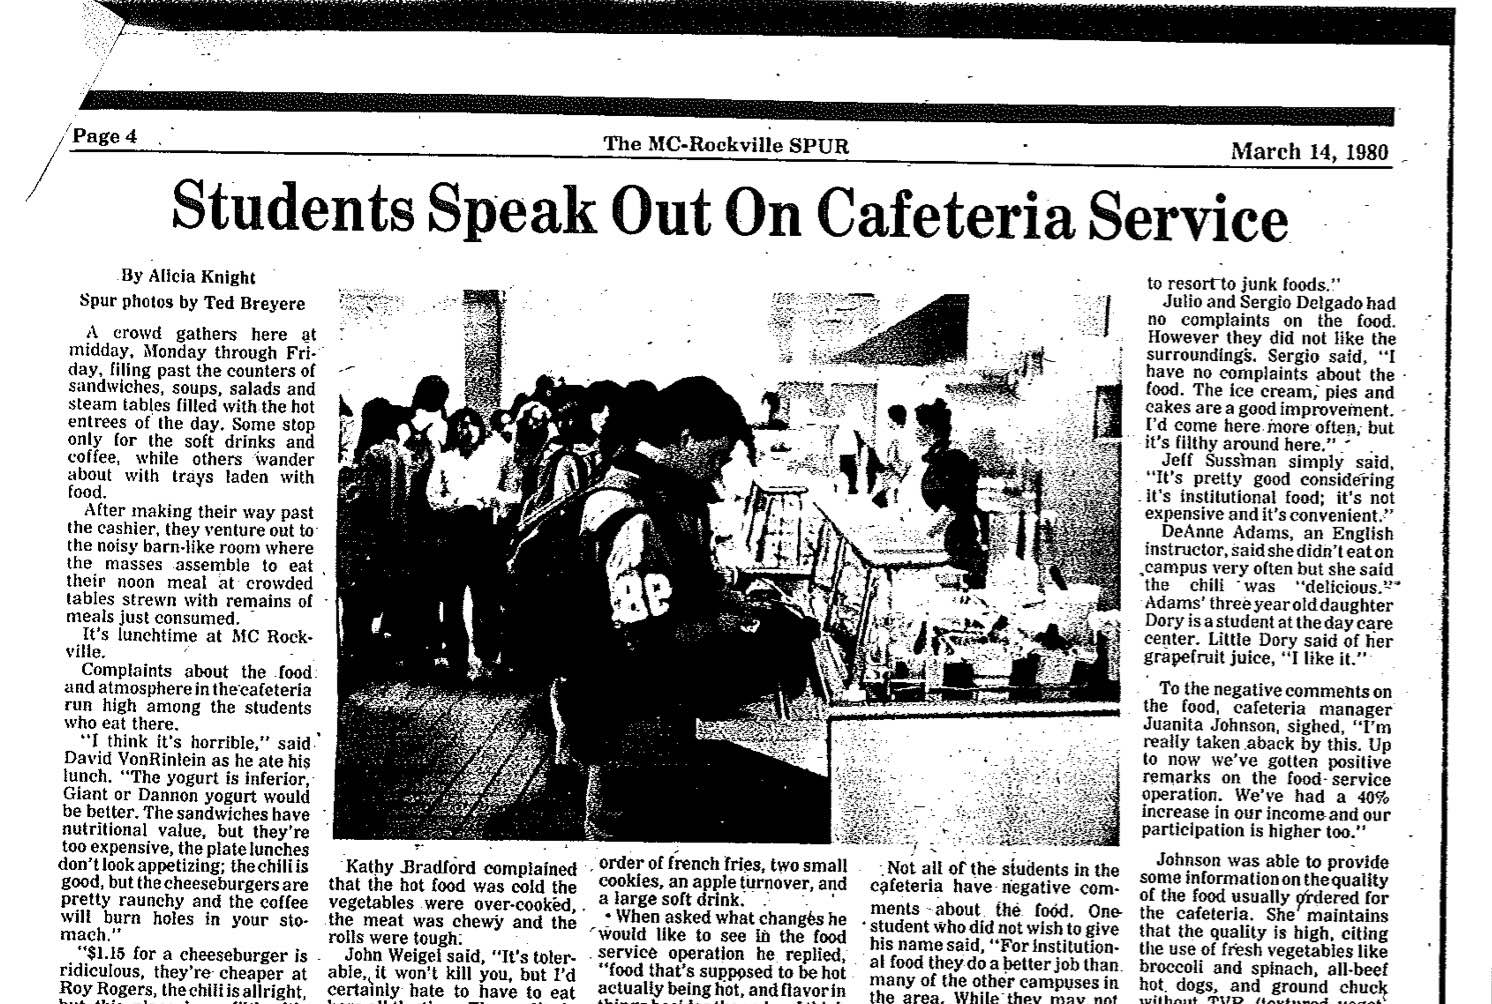 Throwback Thursday: Students Speak Out on Cafeteria Service